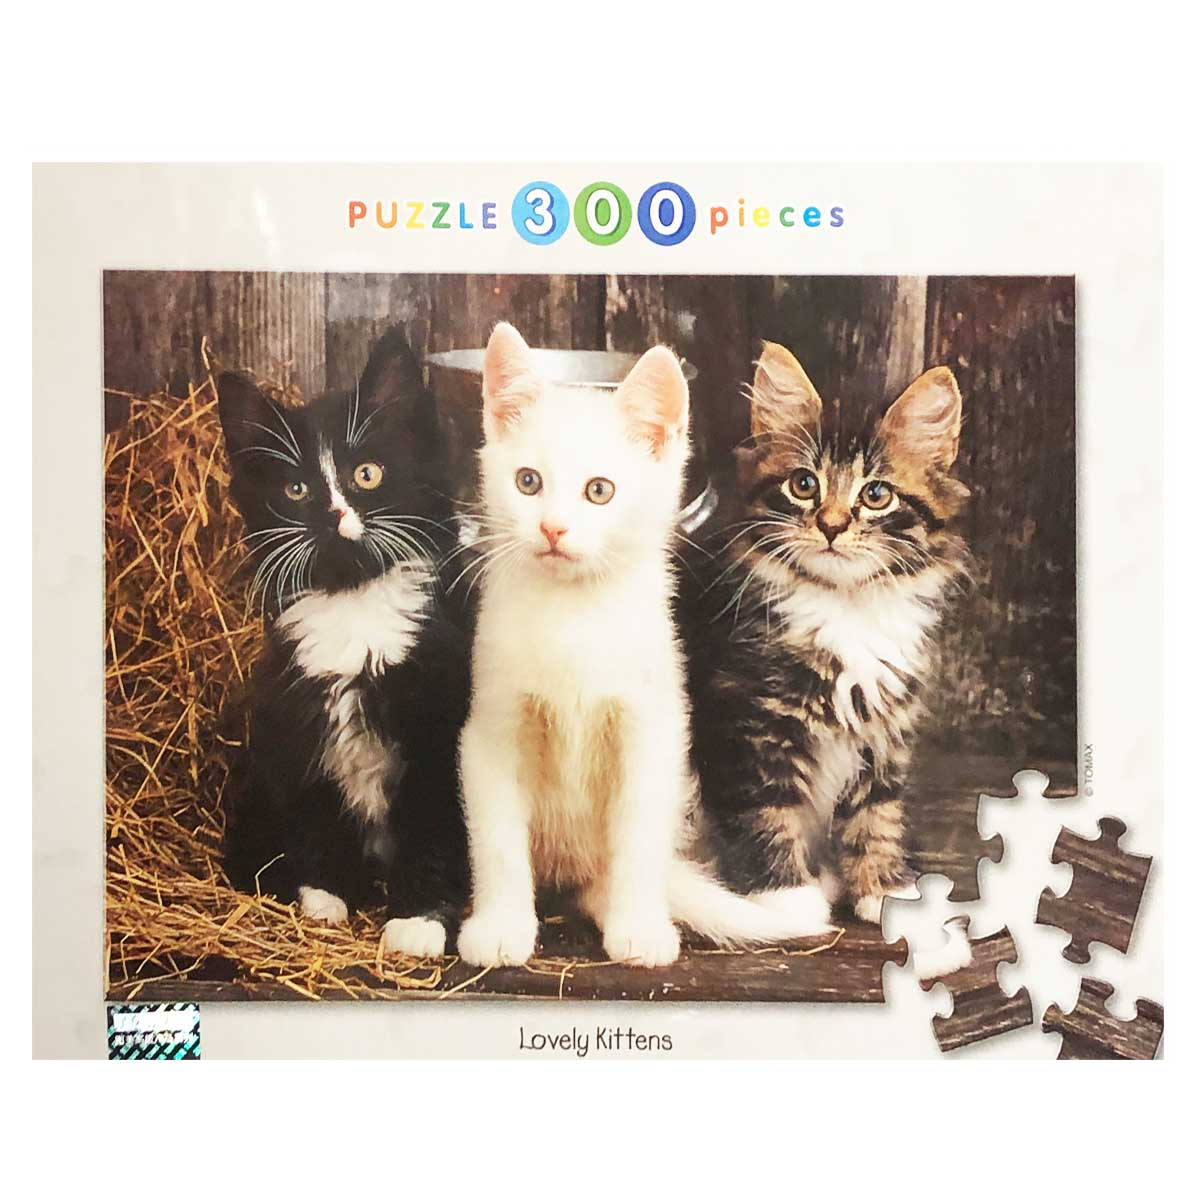 Lovely Kittens Cats Jigsaw Puzzle